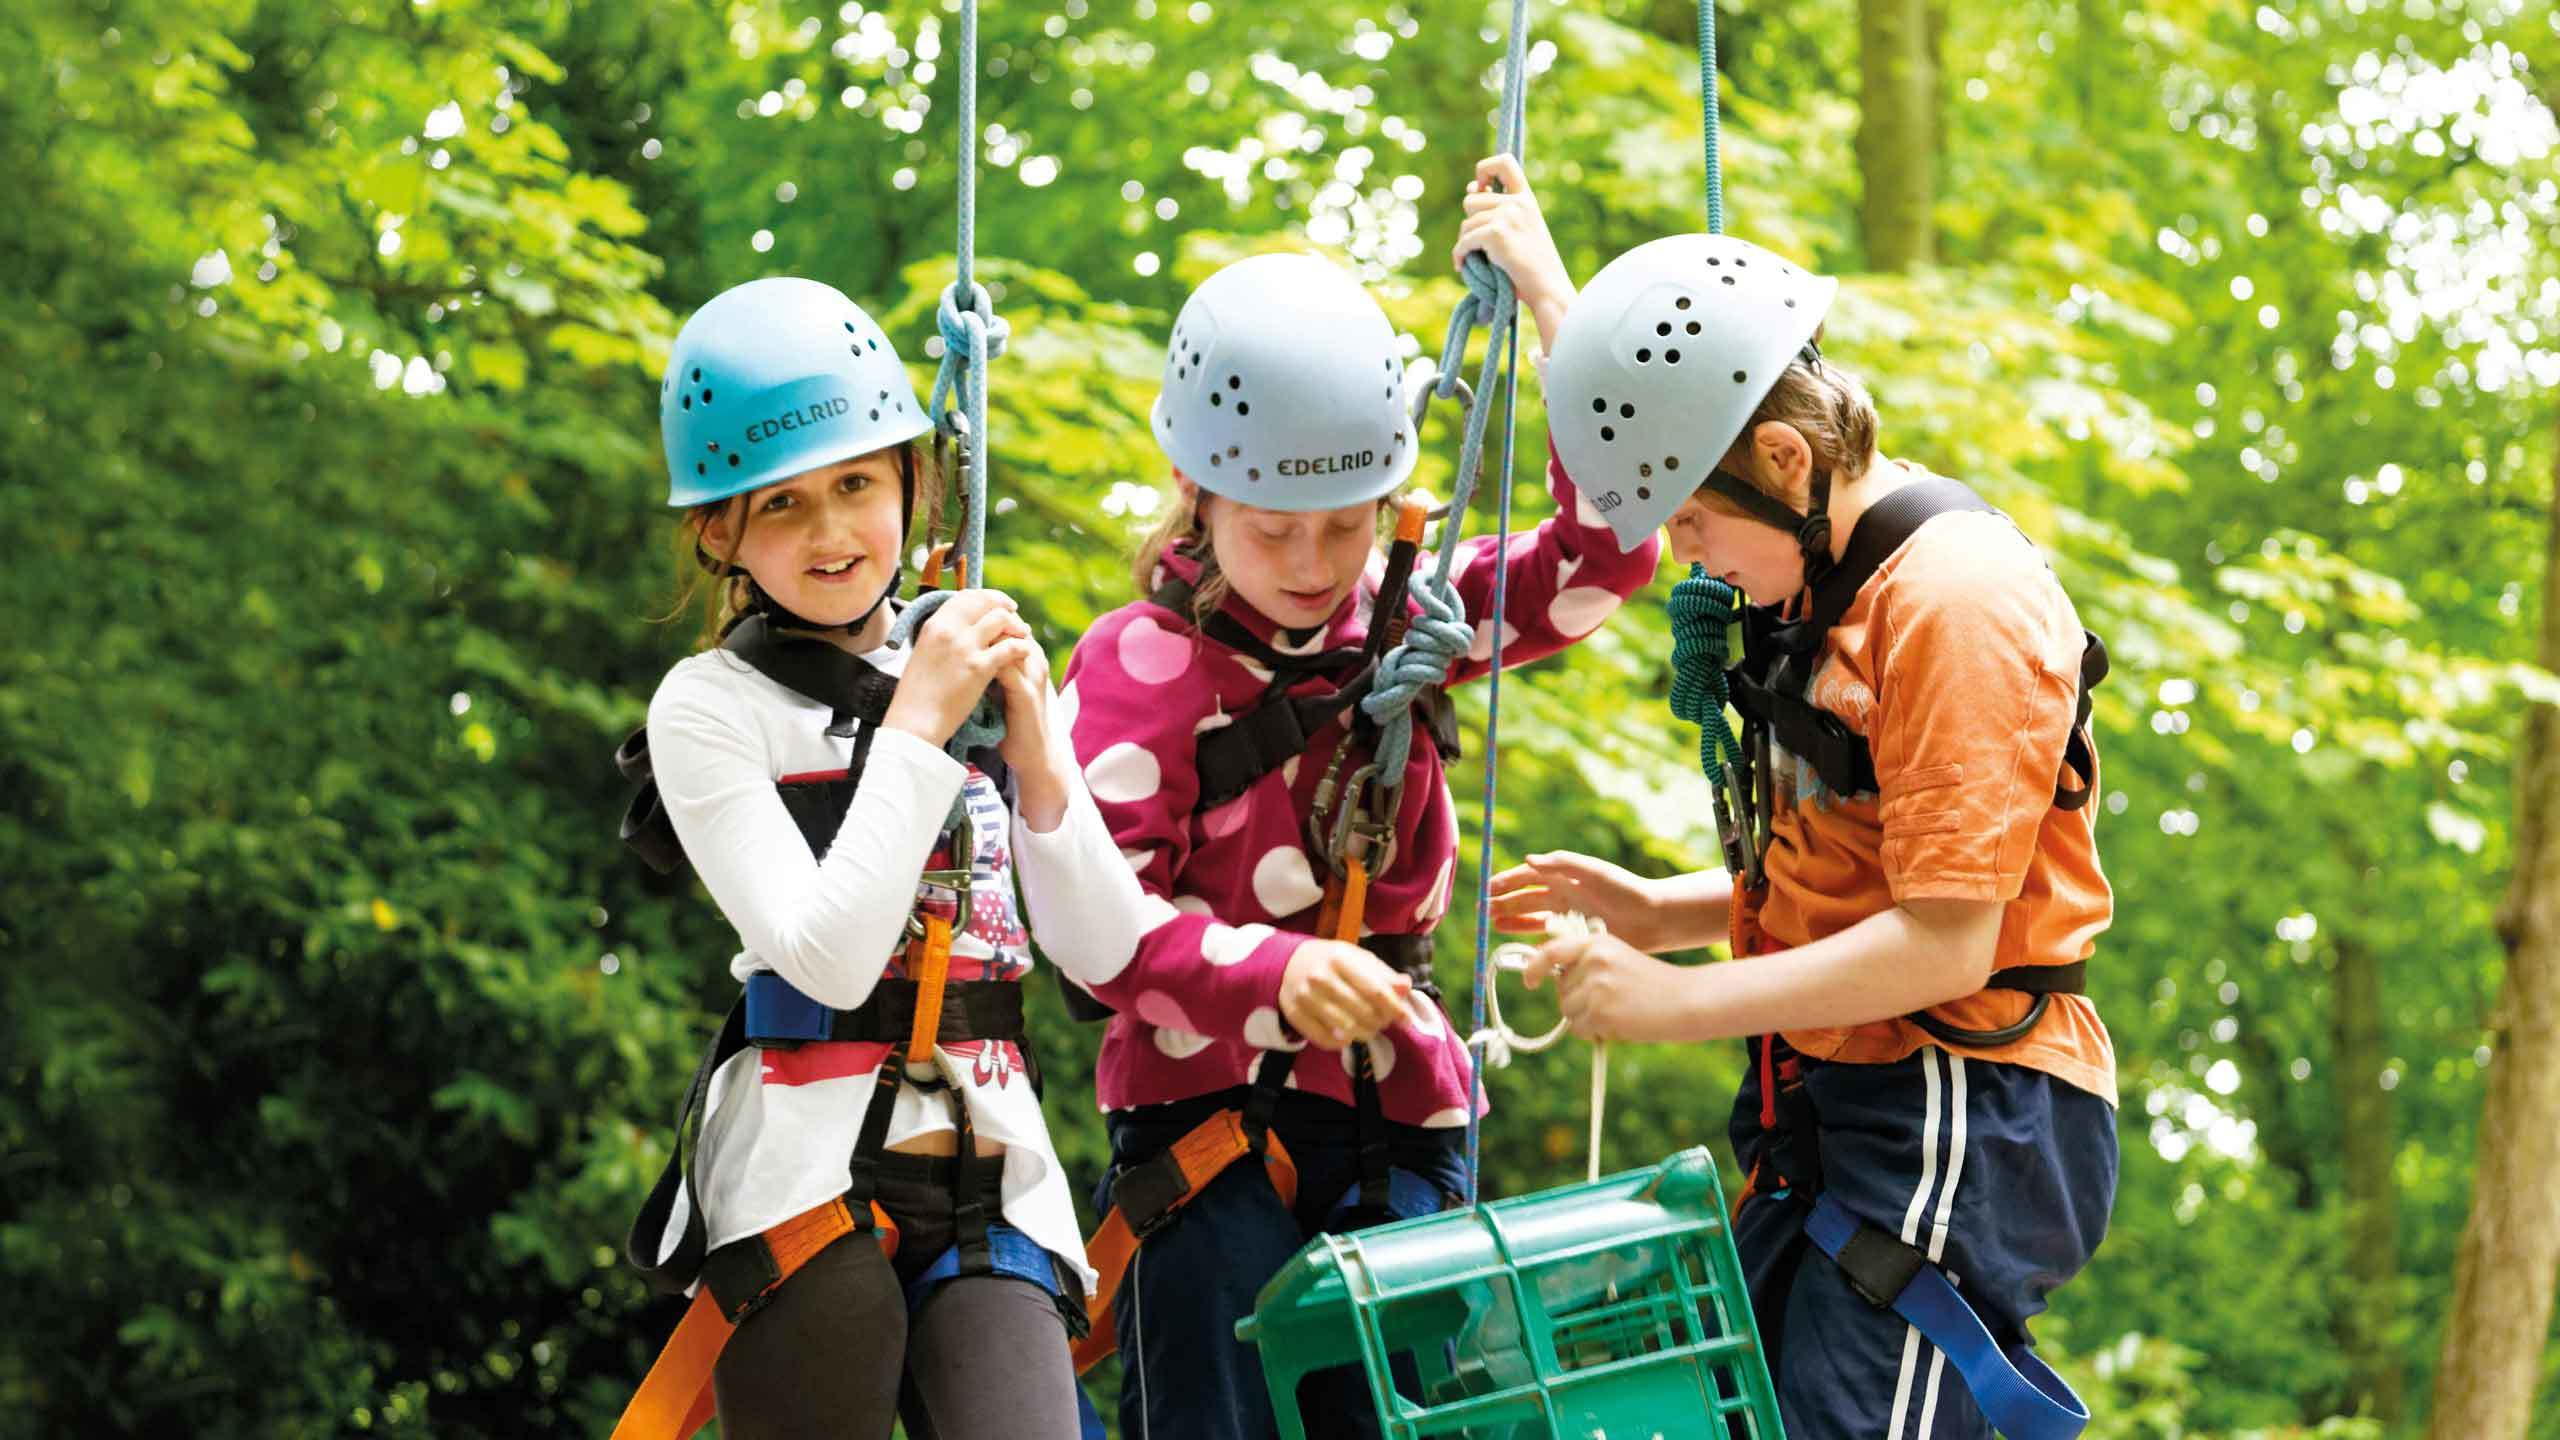 school adventure branding hero image girls climbing pgl travel